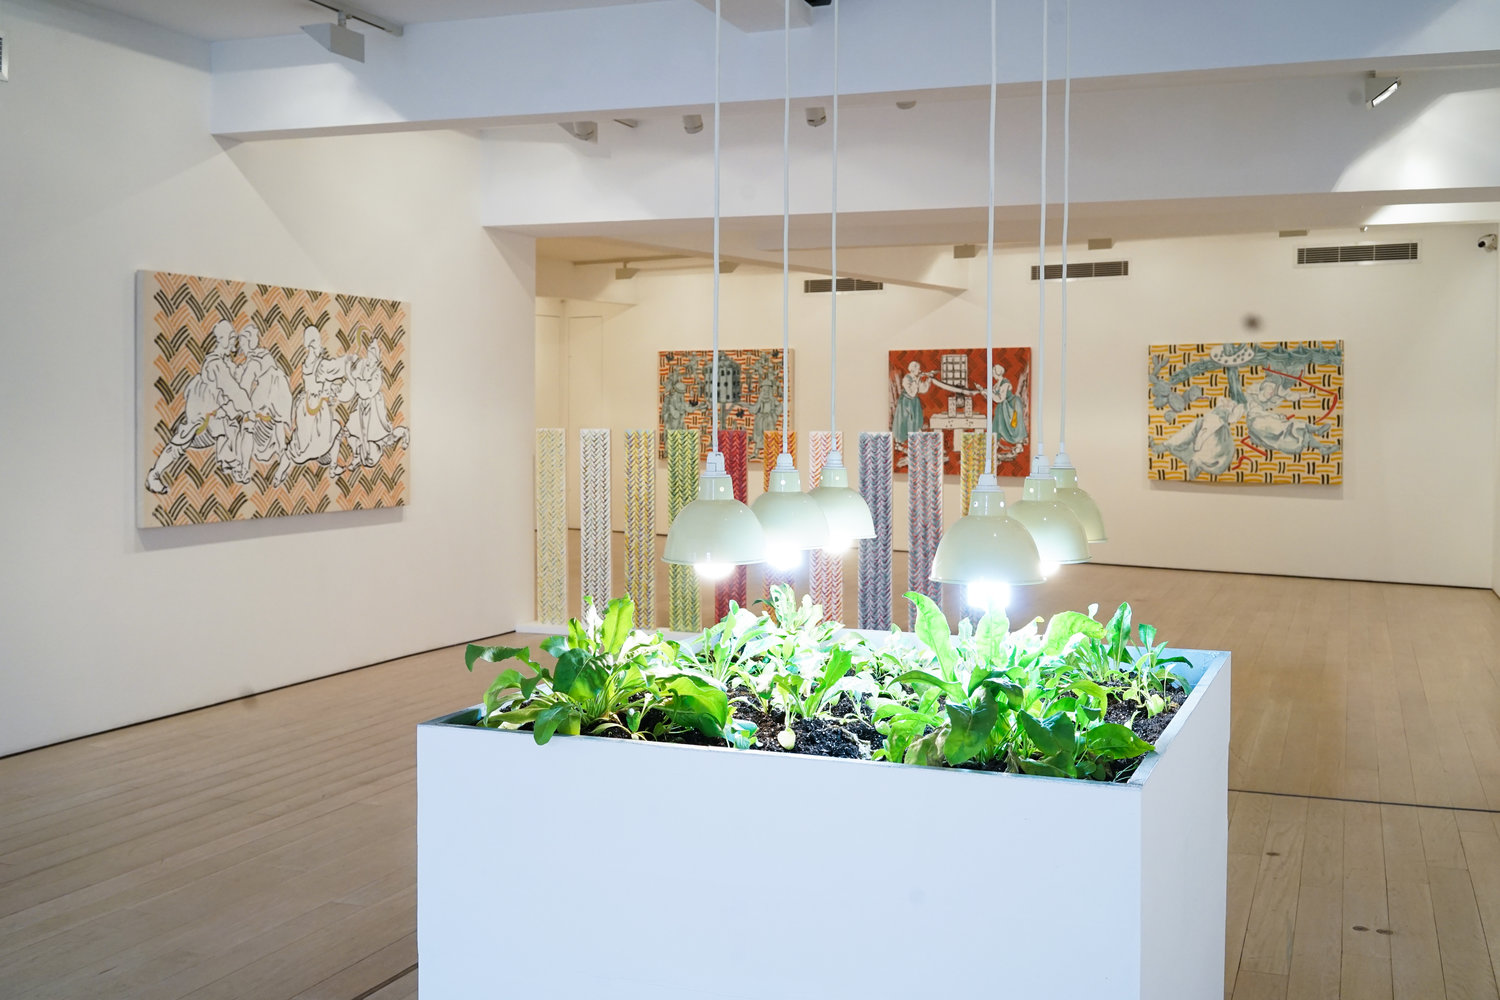 Installation view with woad growing